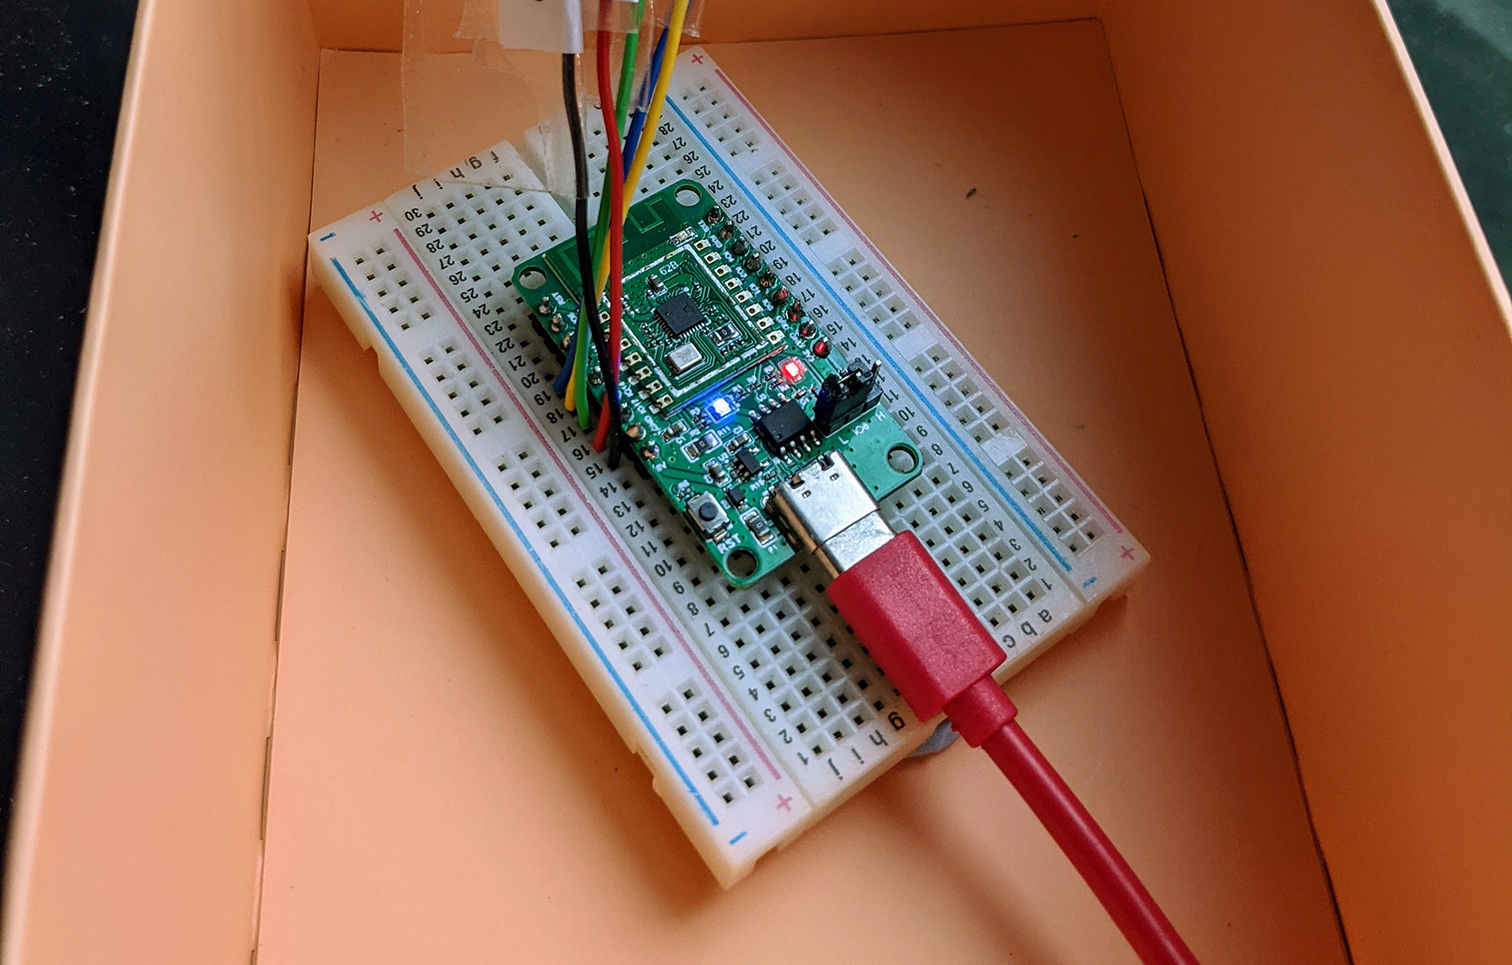 PineCone BL602 RISC-V Evaluation Board with LED controlled by Apache Mynewt